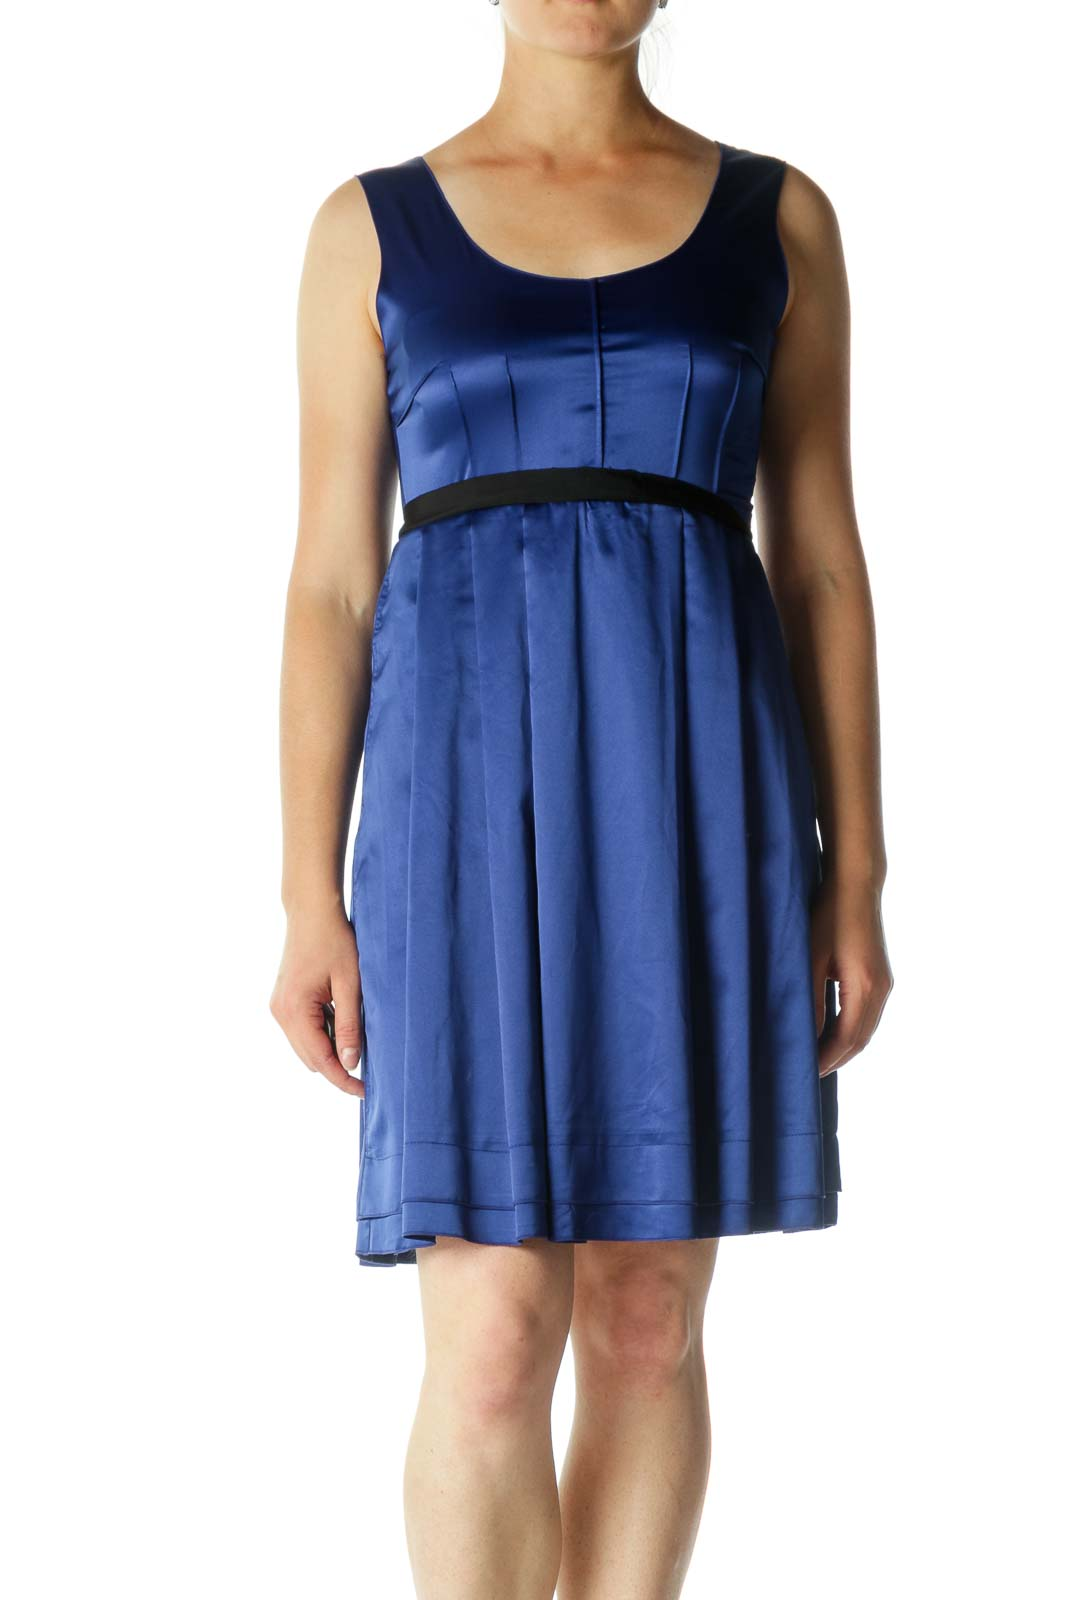 Blue Black Bejeweled Waist Detail Cocktail Dress